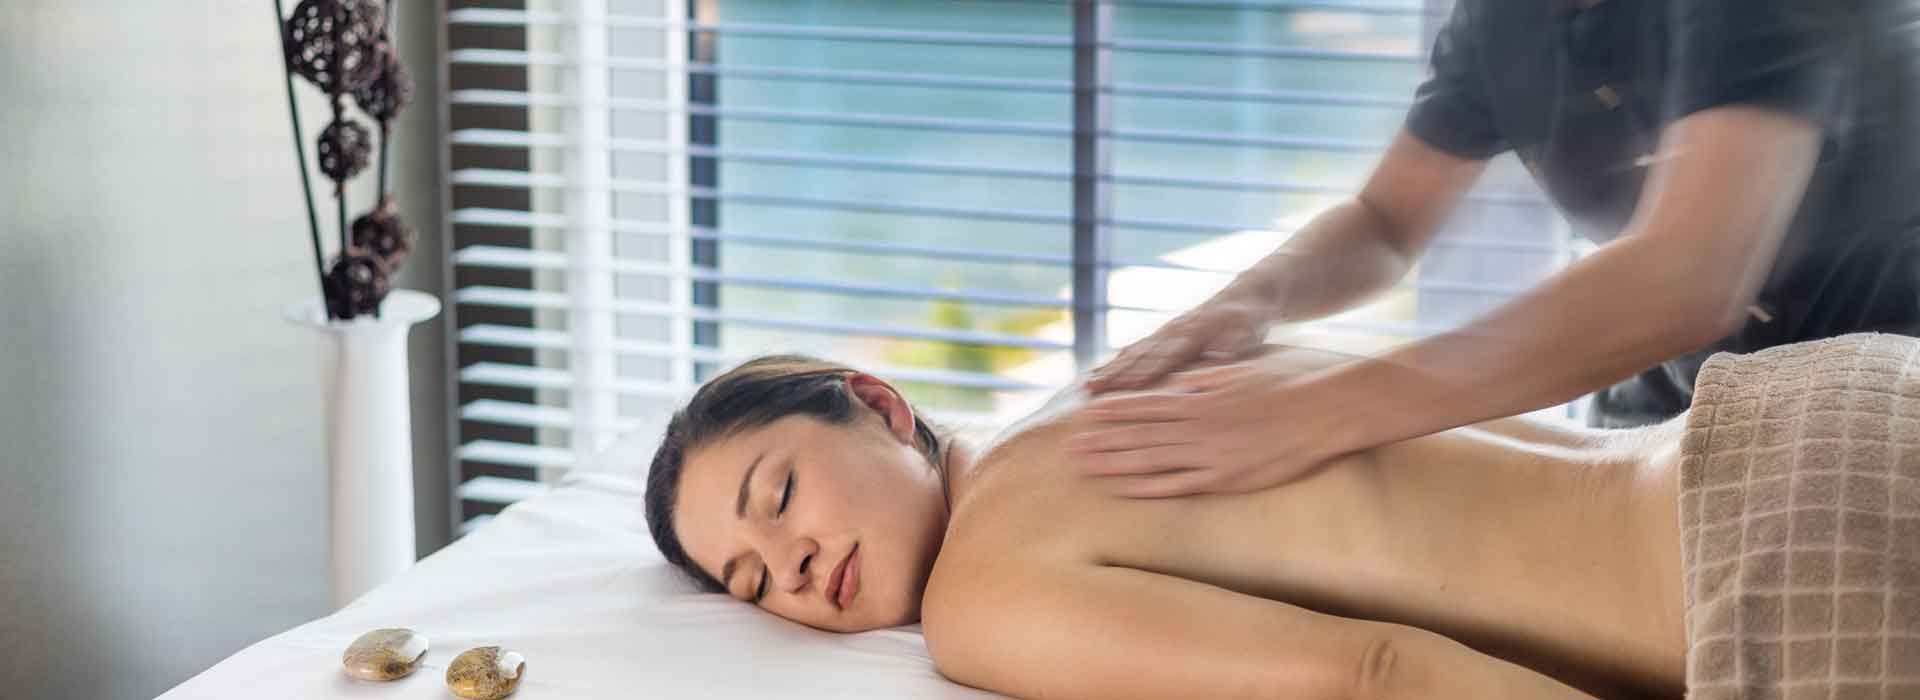 Massage beim Wellness Angebot